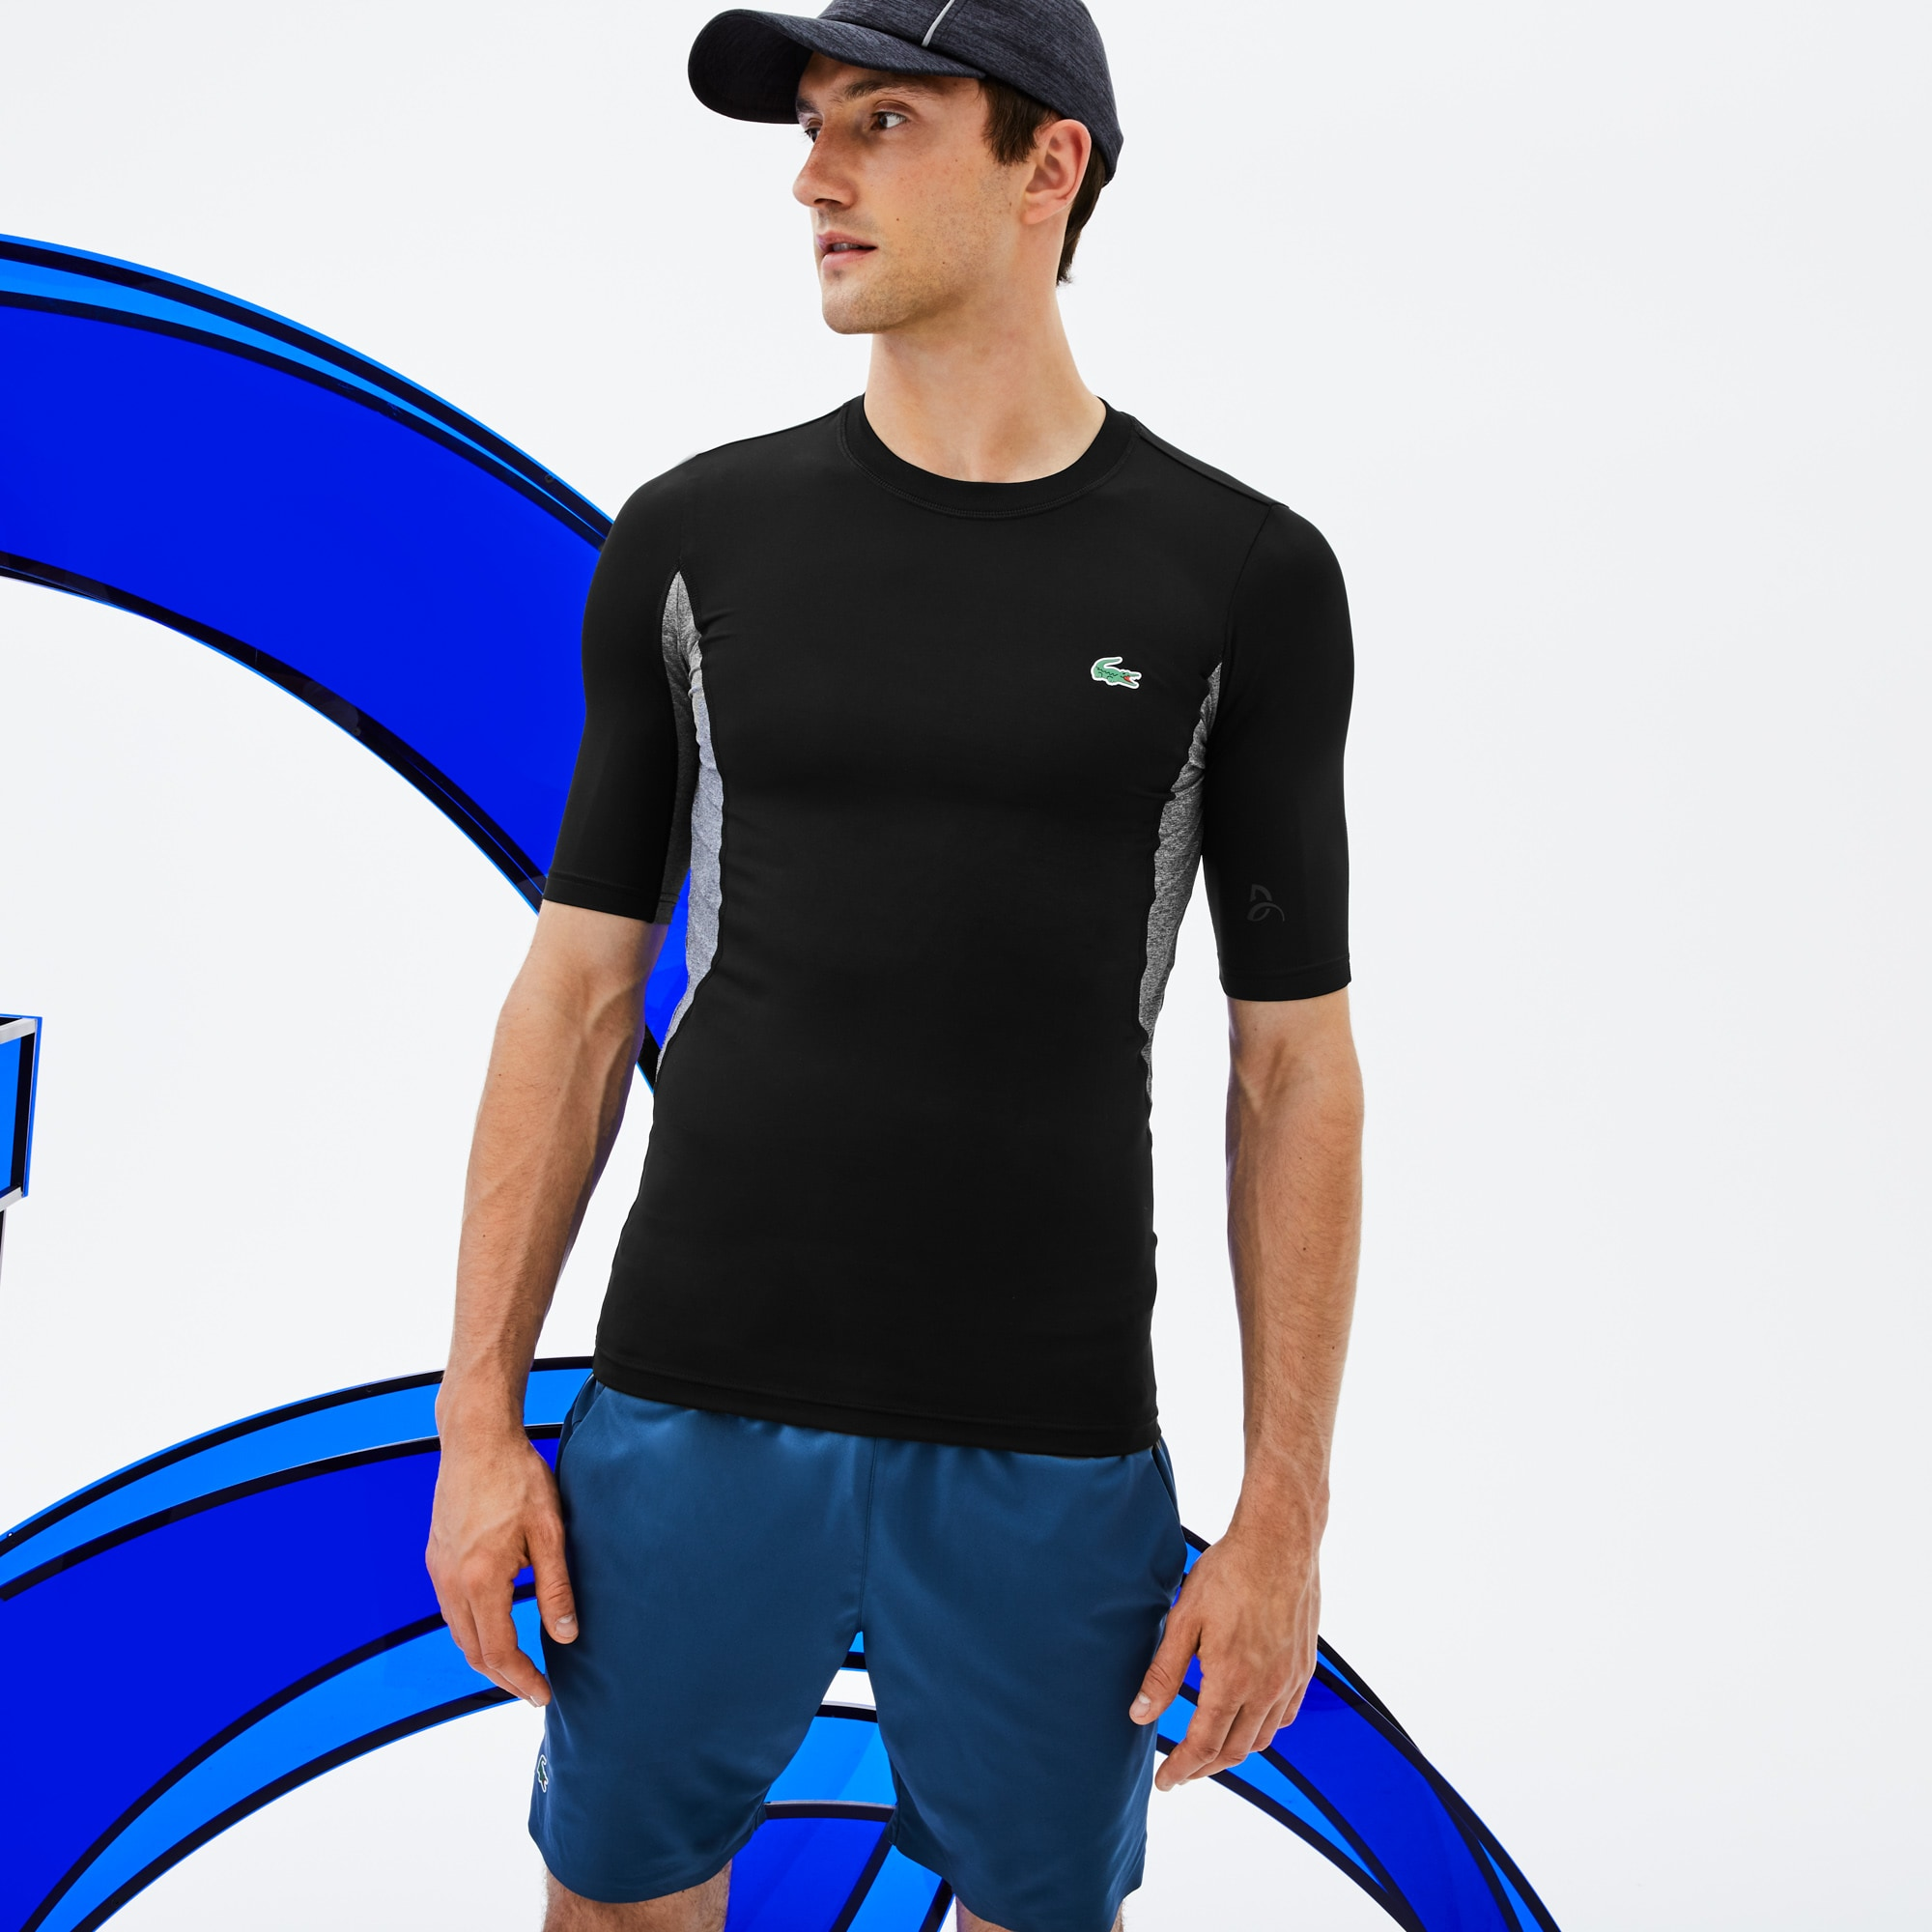 Men's SPORT Crew Neck Stretch Technical Jersey T-shirt -  x Novak Djokovic Off Court Premium Edition